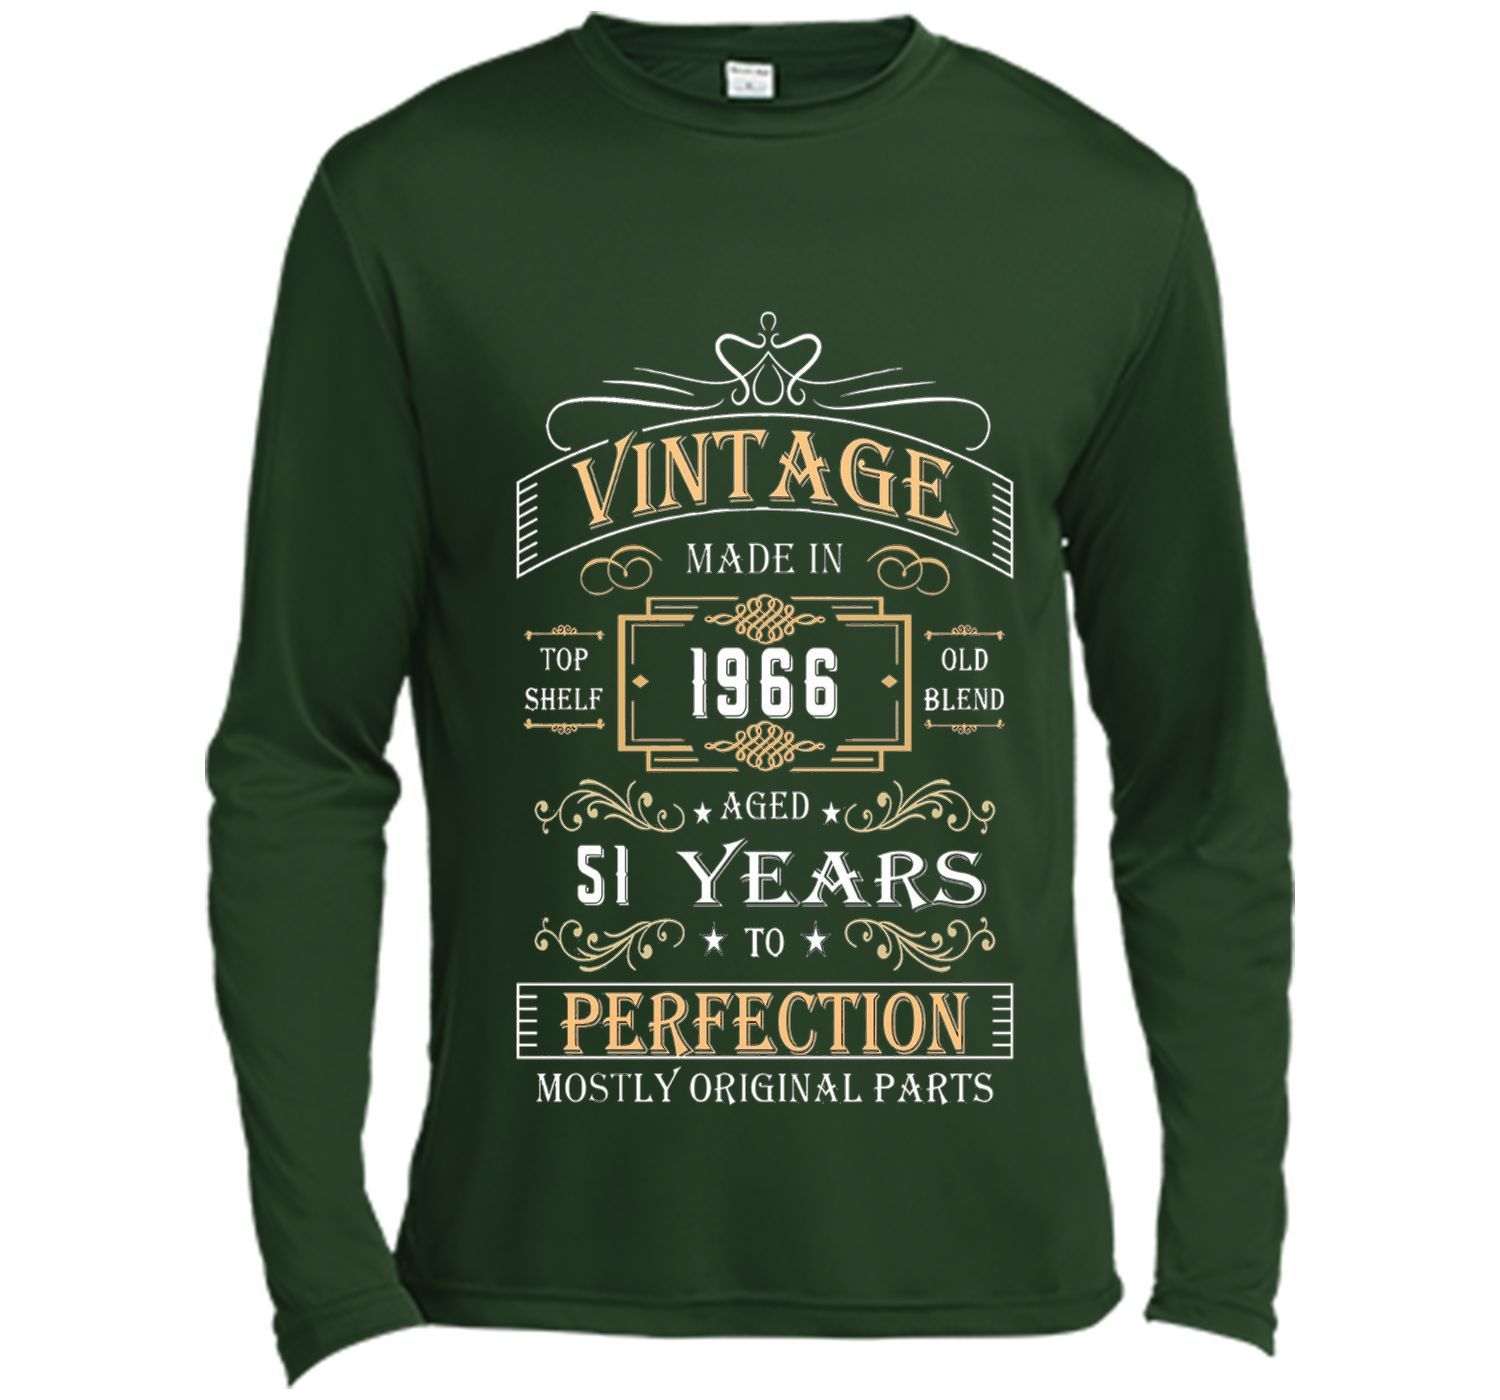 Vintage Age 51 Years 1966 Perfect 51st Birthday Gift T-Shirt